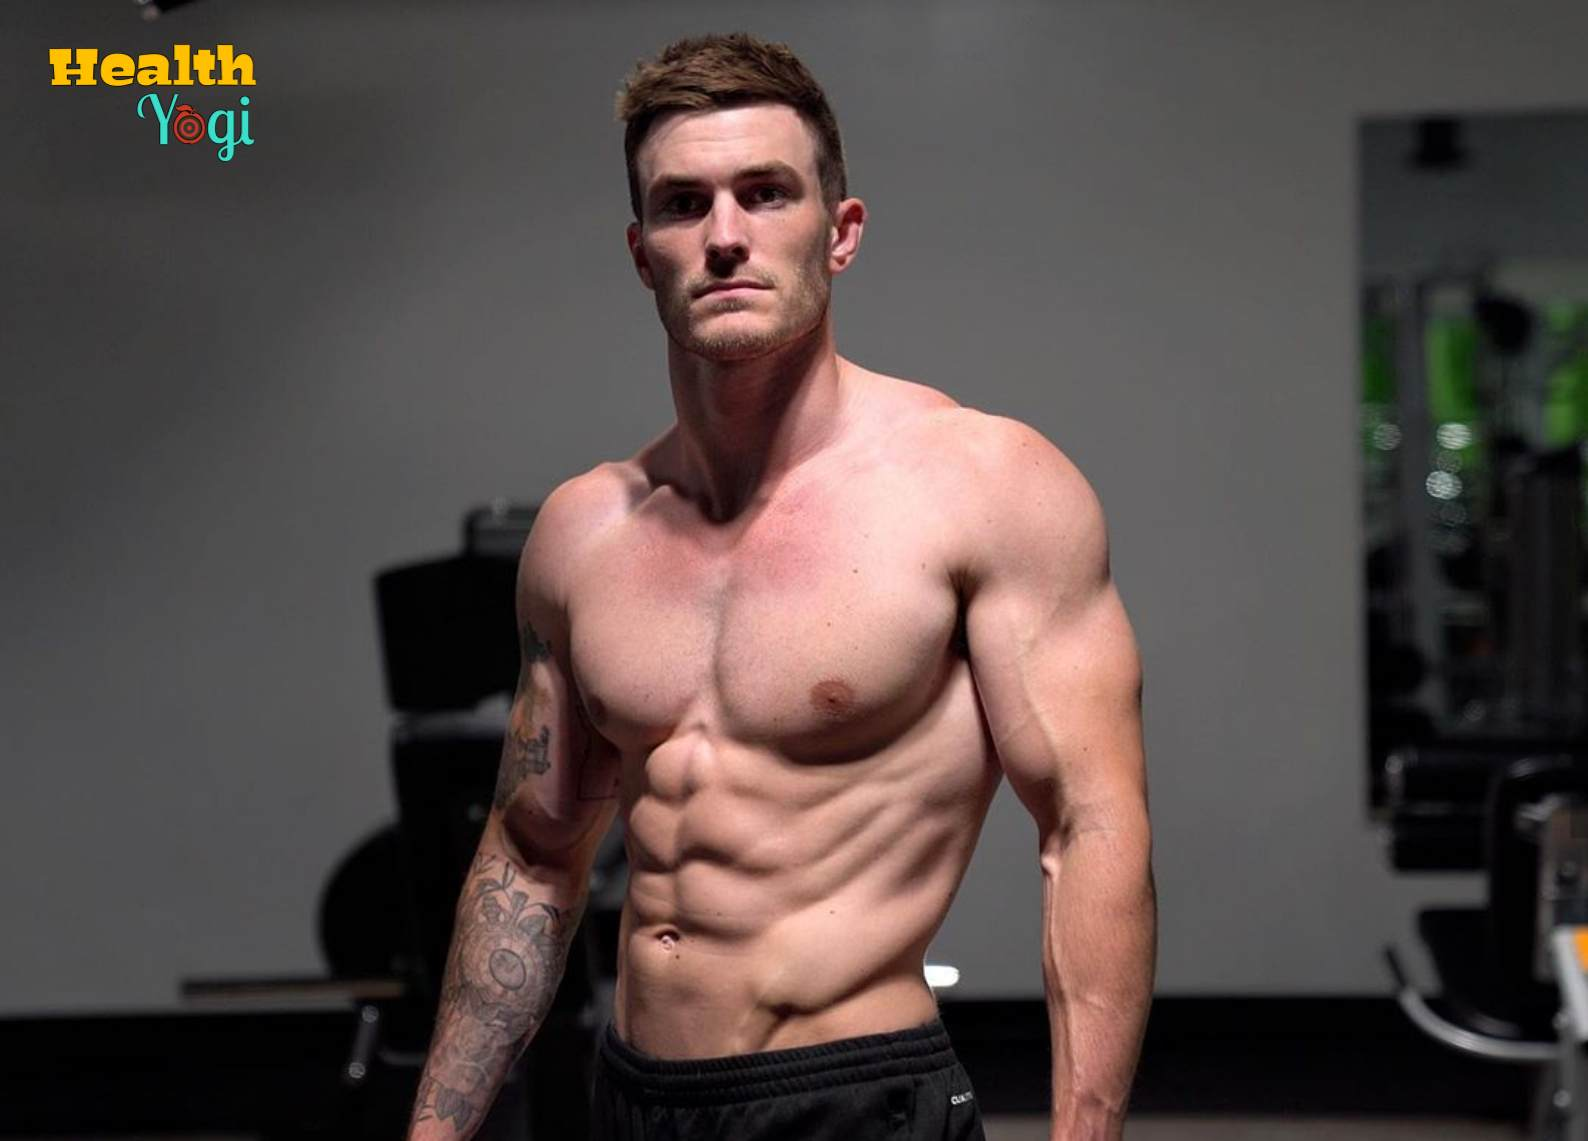 Vince Sant Diet Plan And Workout Routine Workout Video Instagram Photos 2019 Getkuls